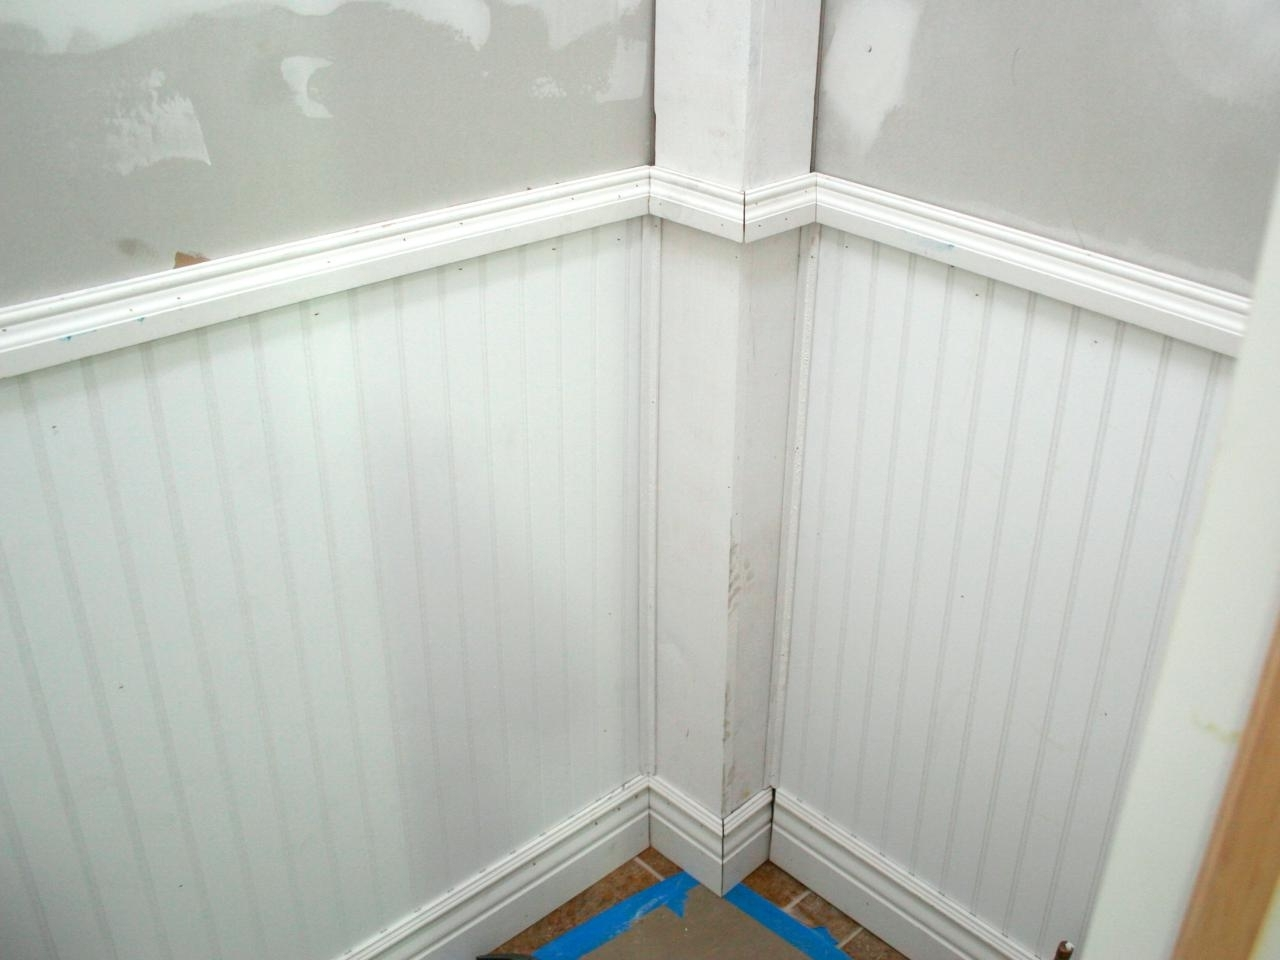 Wainscoting And Tiling A Half Bath | Hgtv 20+ Wainscoting Bathroom Pictures Inspirations